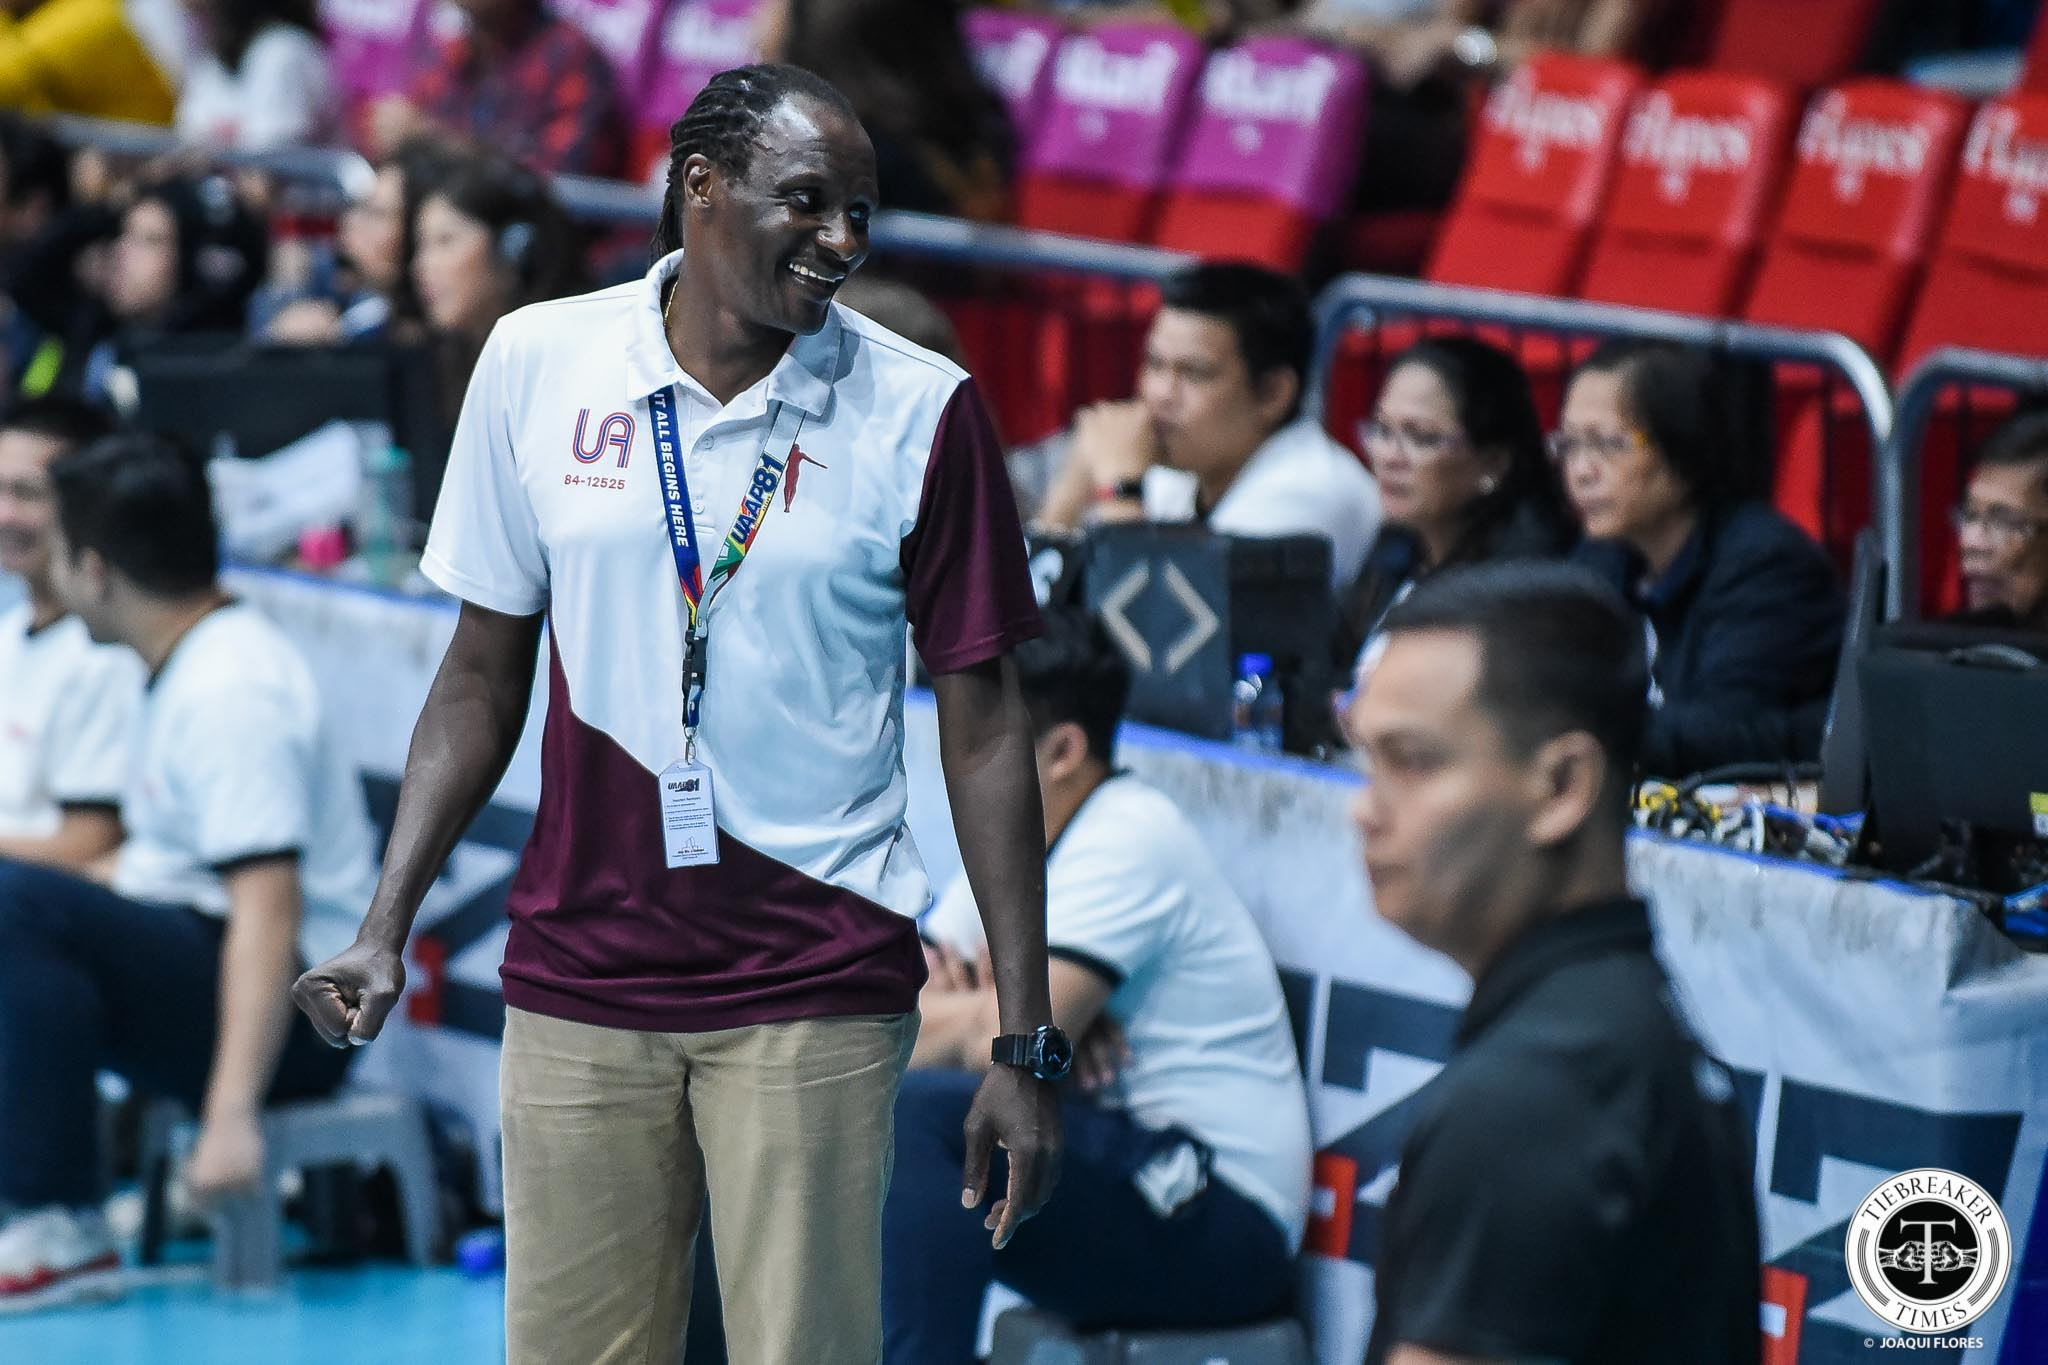 Tiebreaker Times Godfrey Okumu had run-in with immigration midway through season News UAAP UP Volleyball  UP Women's Volleyball UAAP Season 81 Women's Volleyball UAAP Season 81 Godfrey Okumu